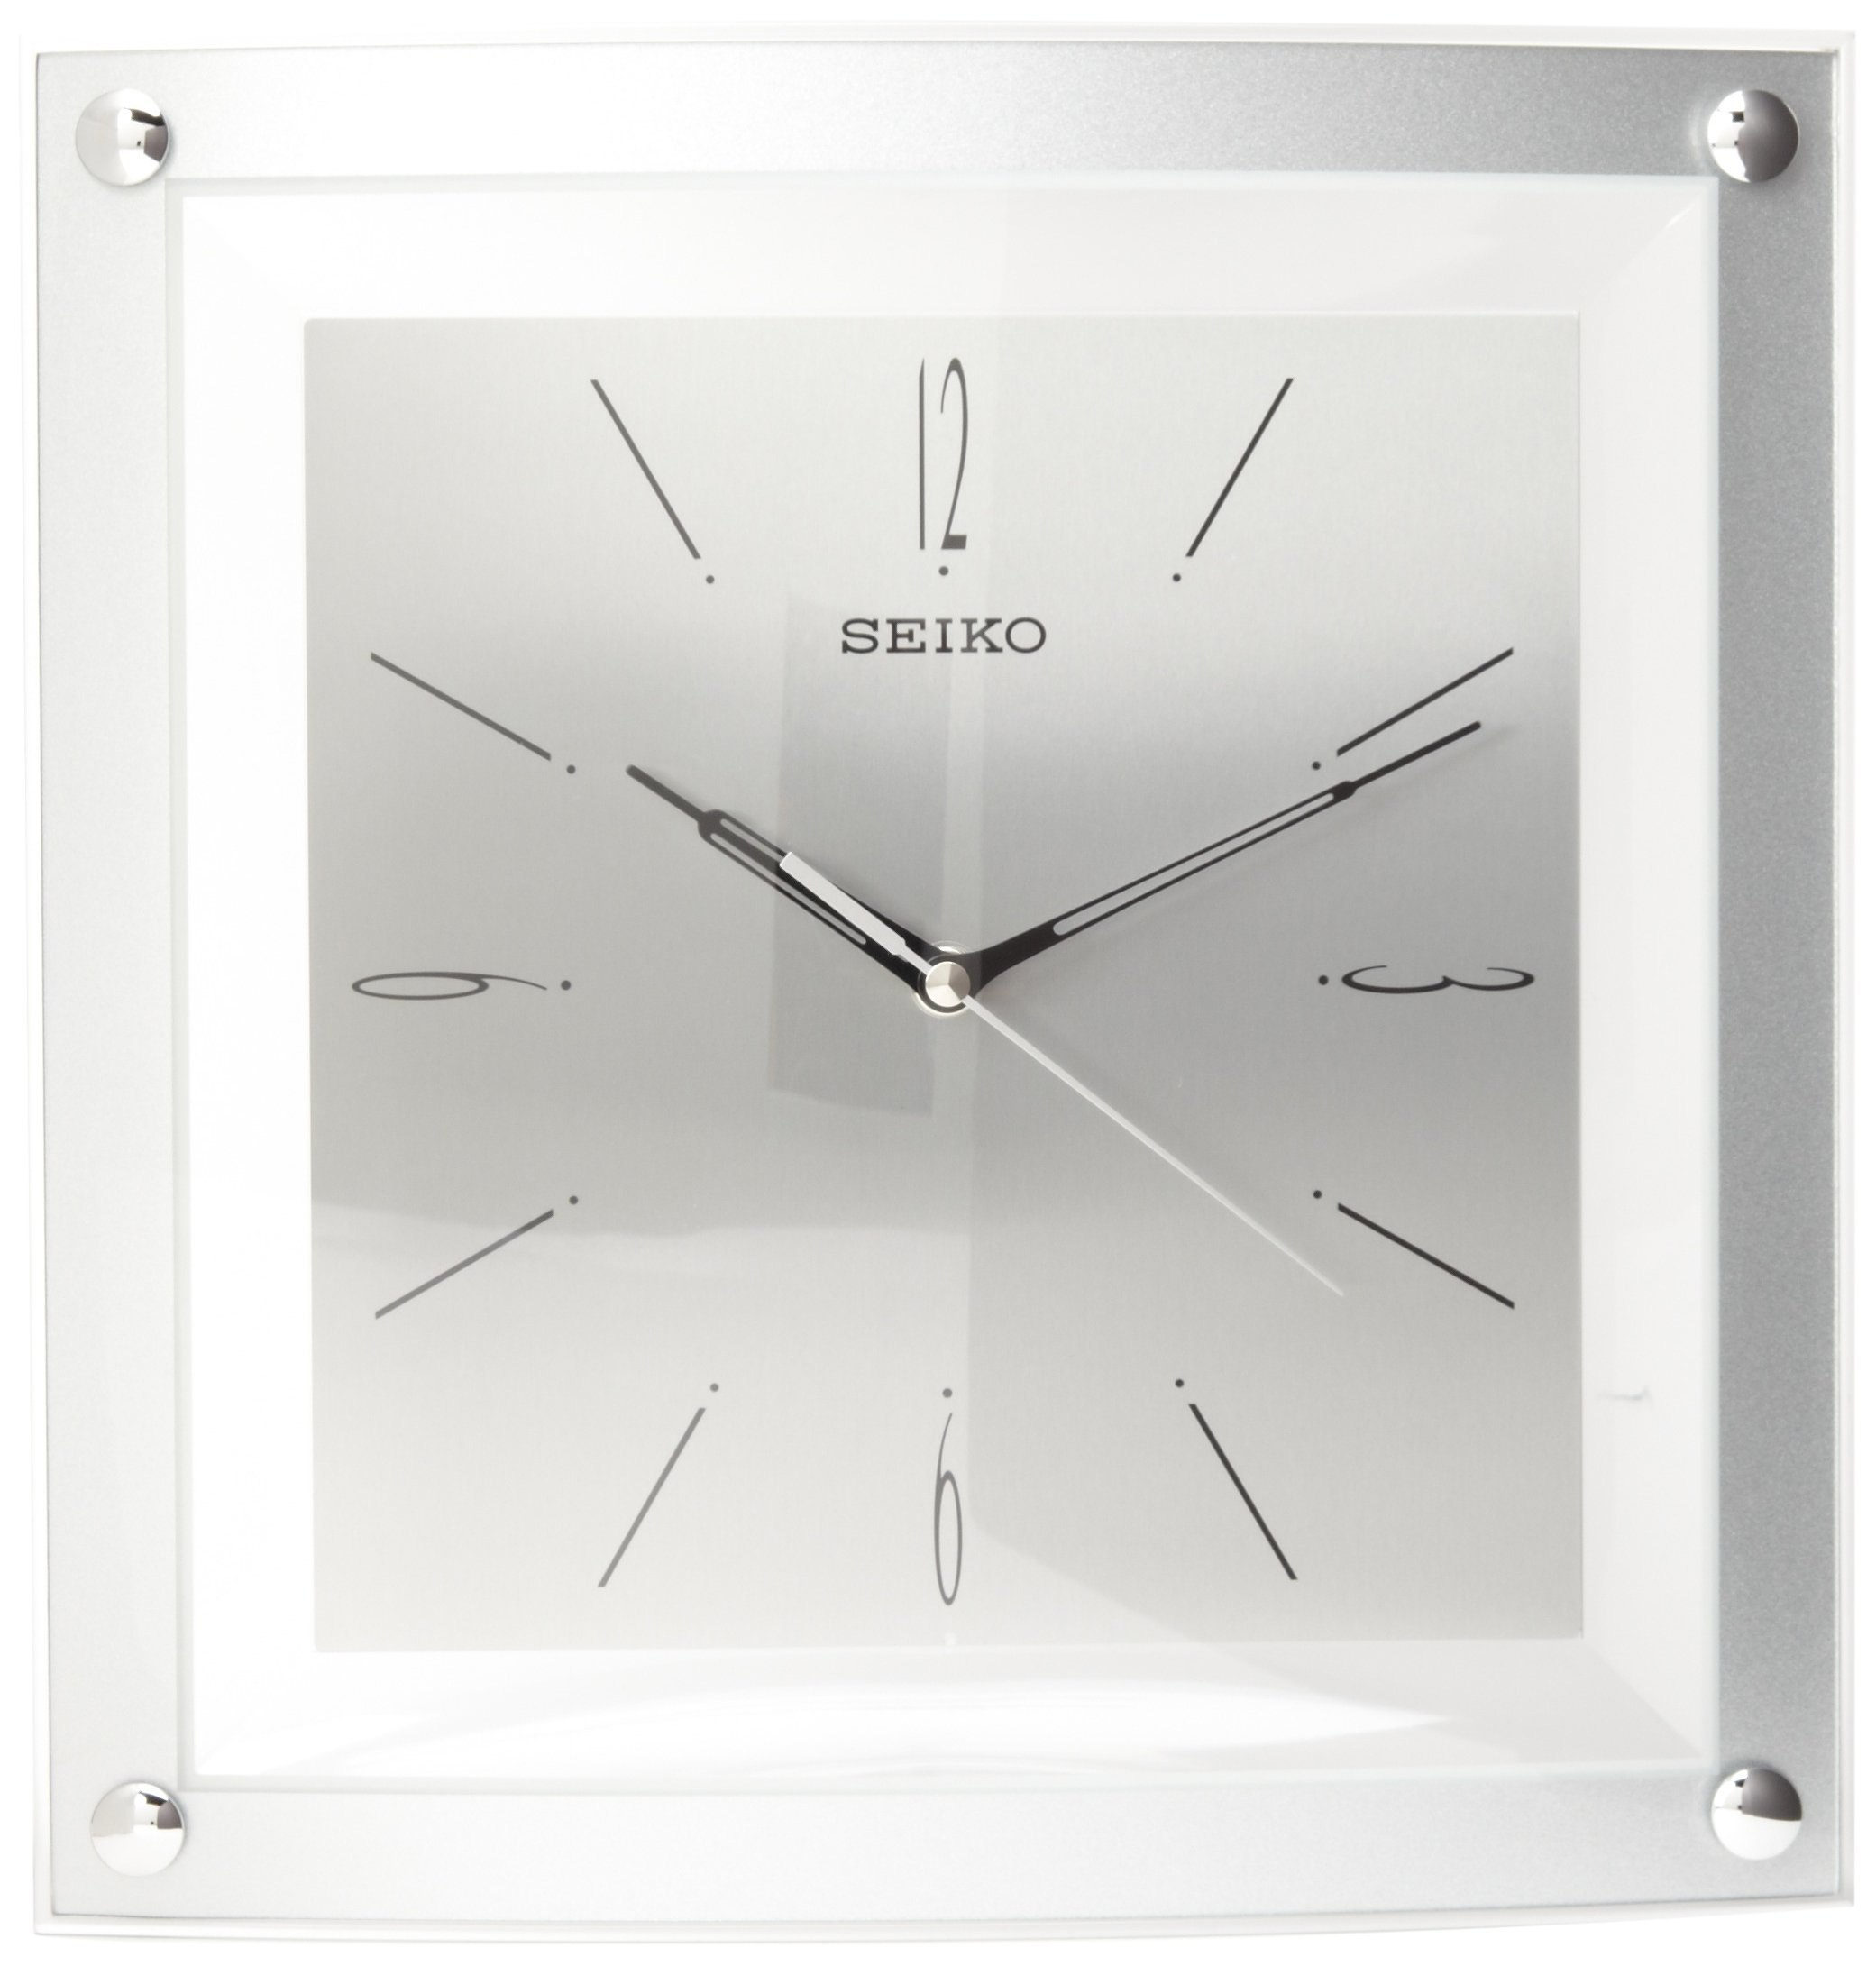 Seiko Wall Clock Quiet Sweep Second Hand Clock Silver-Tone Metallic Case by SEIKO